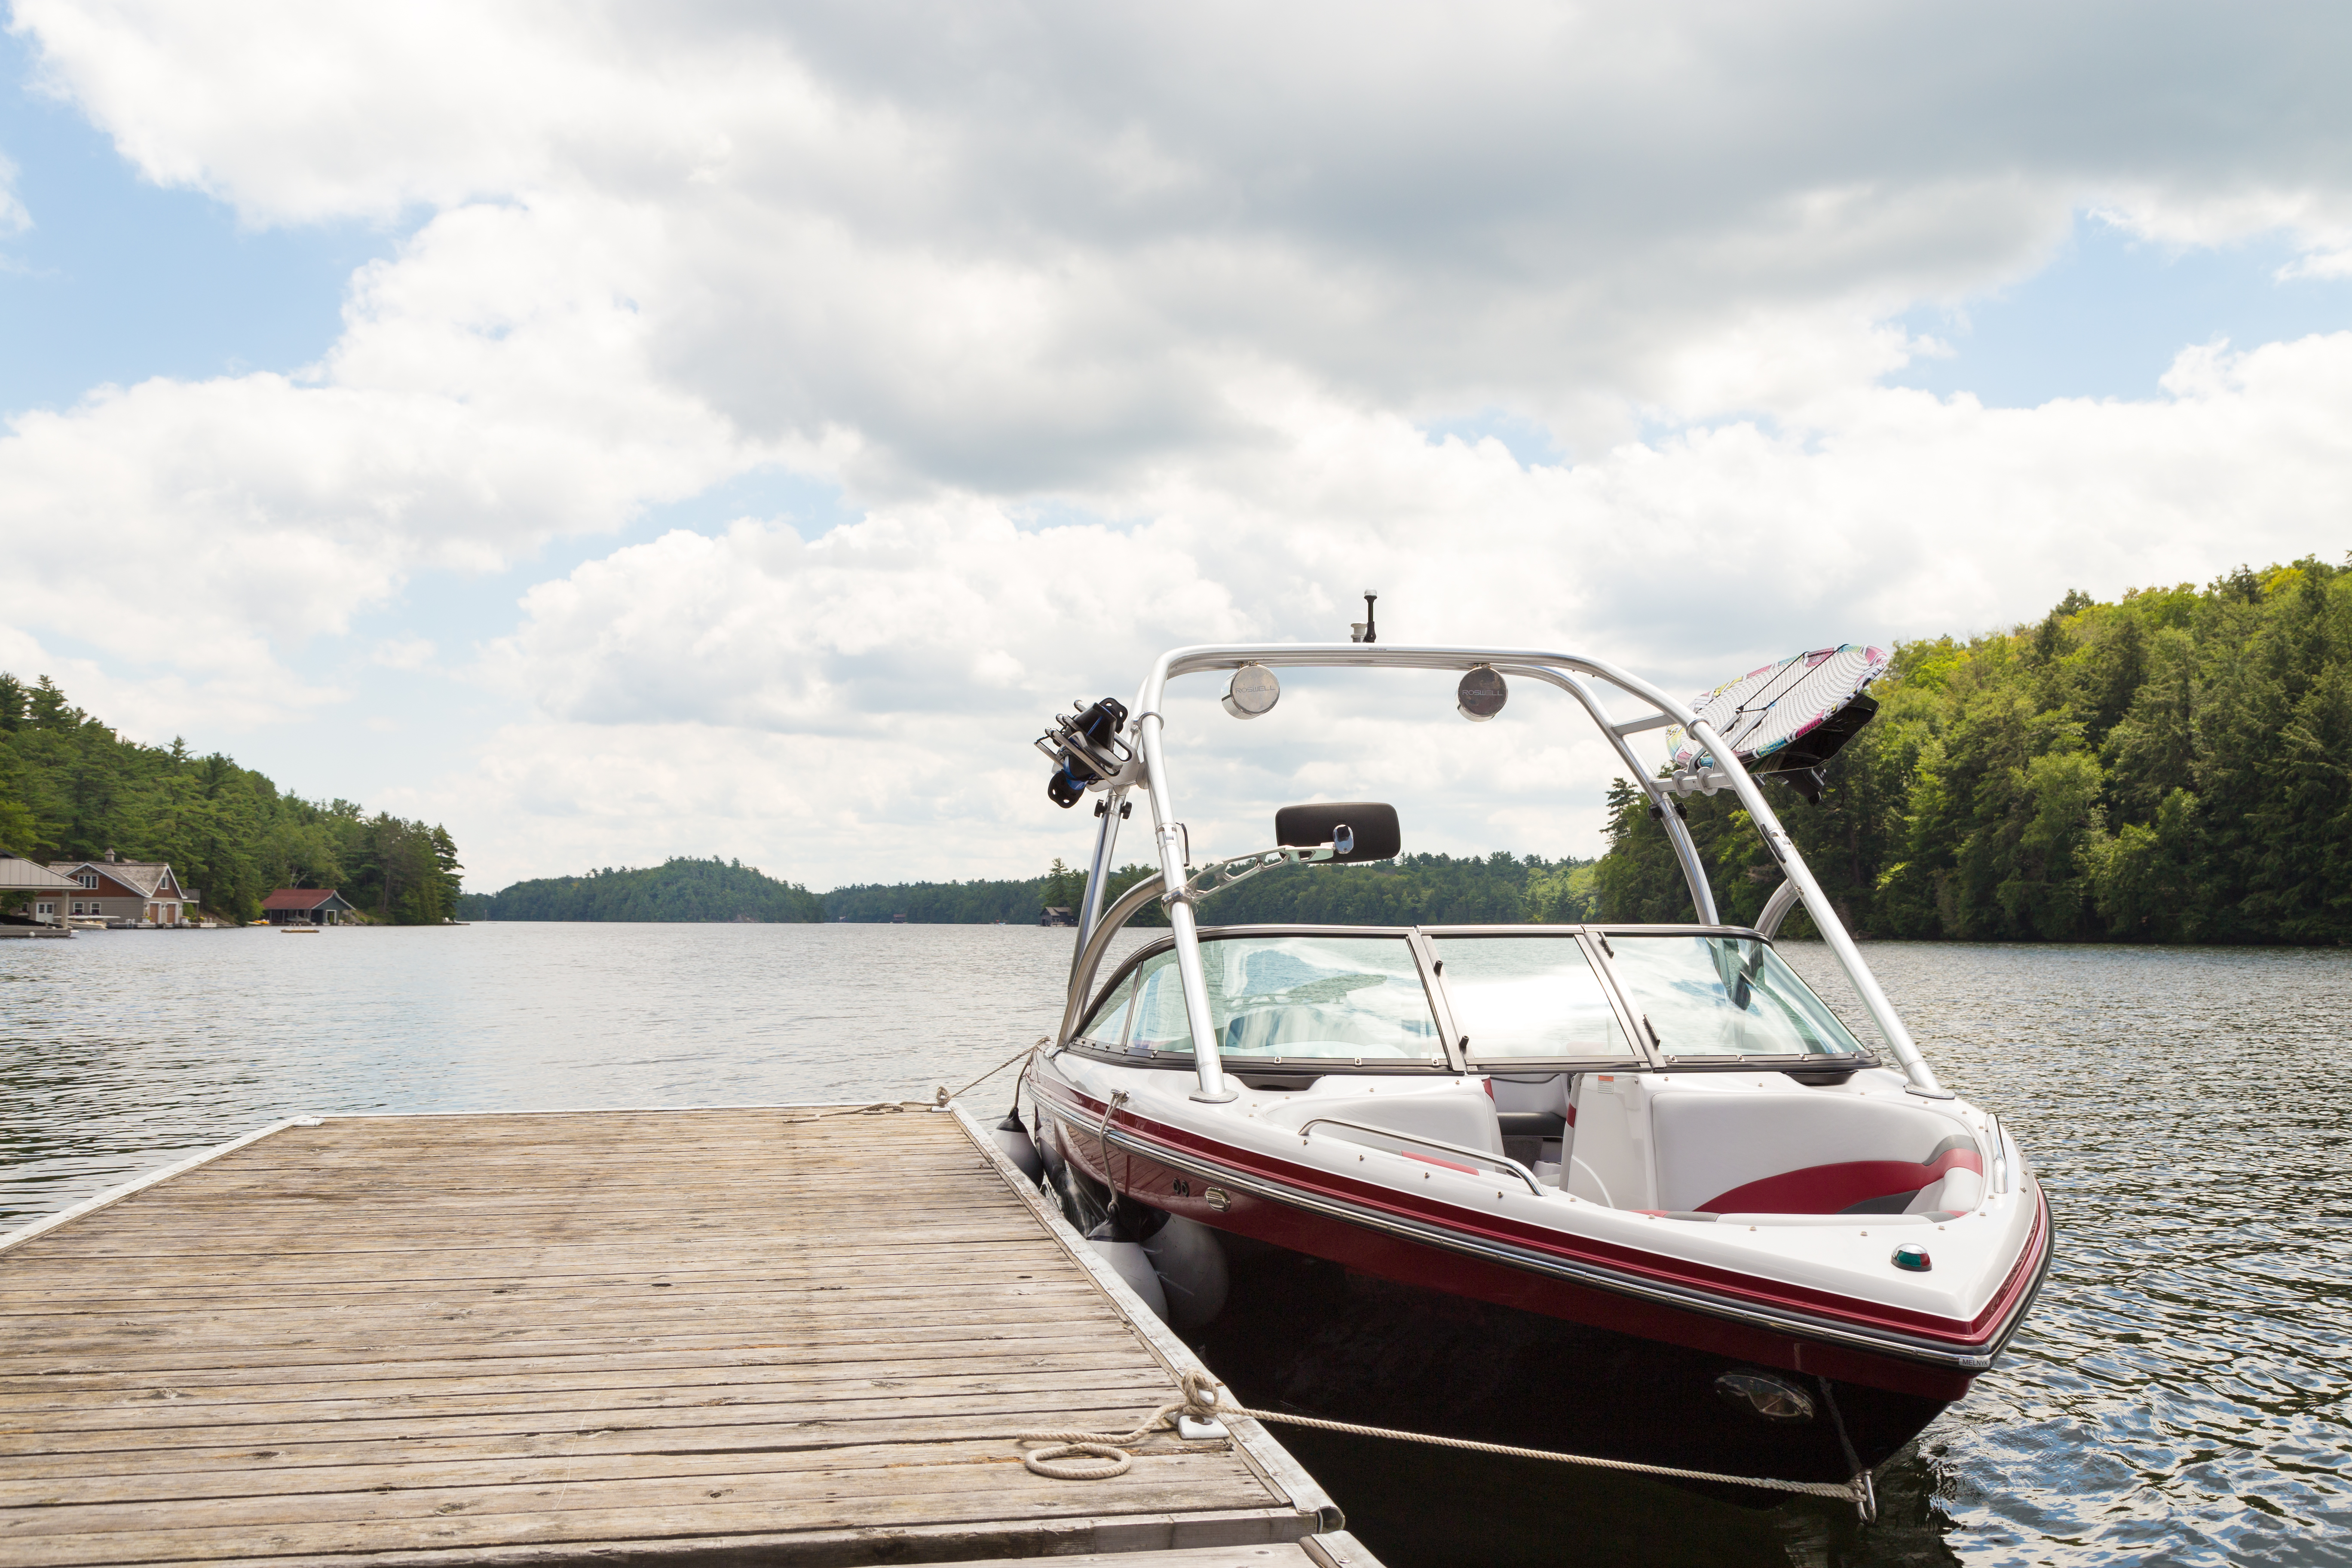 Boating Safety Tips: What You Need To Know